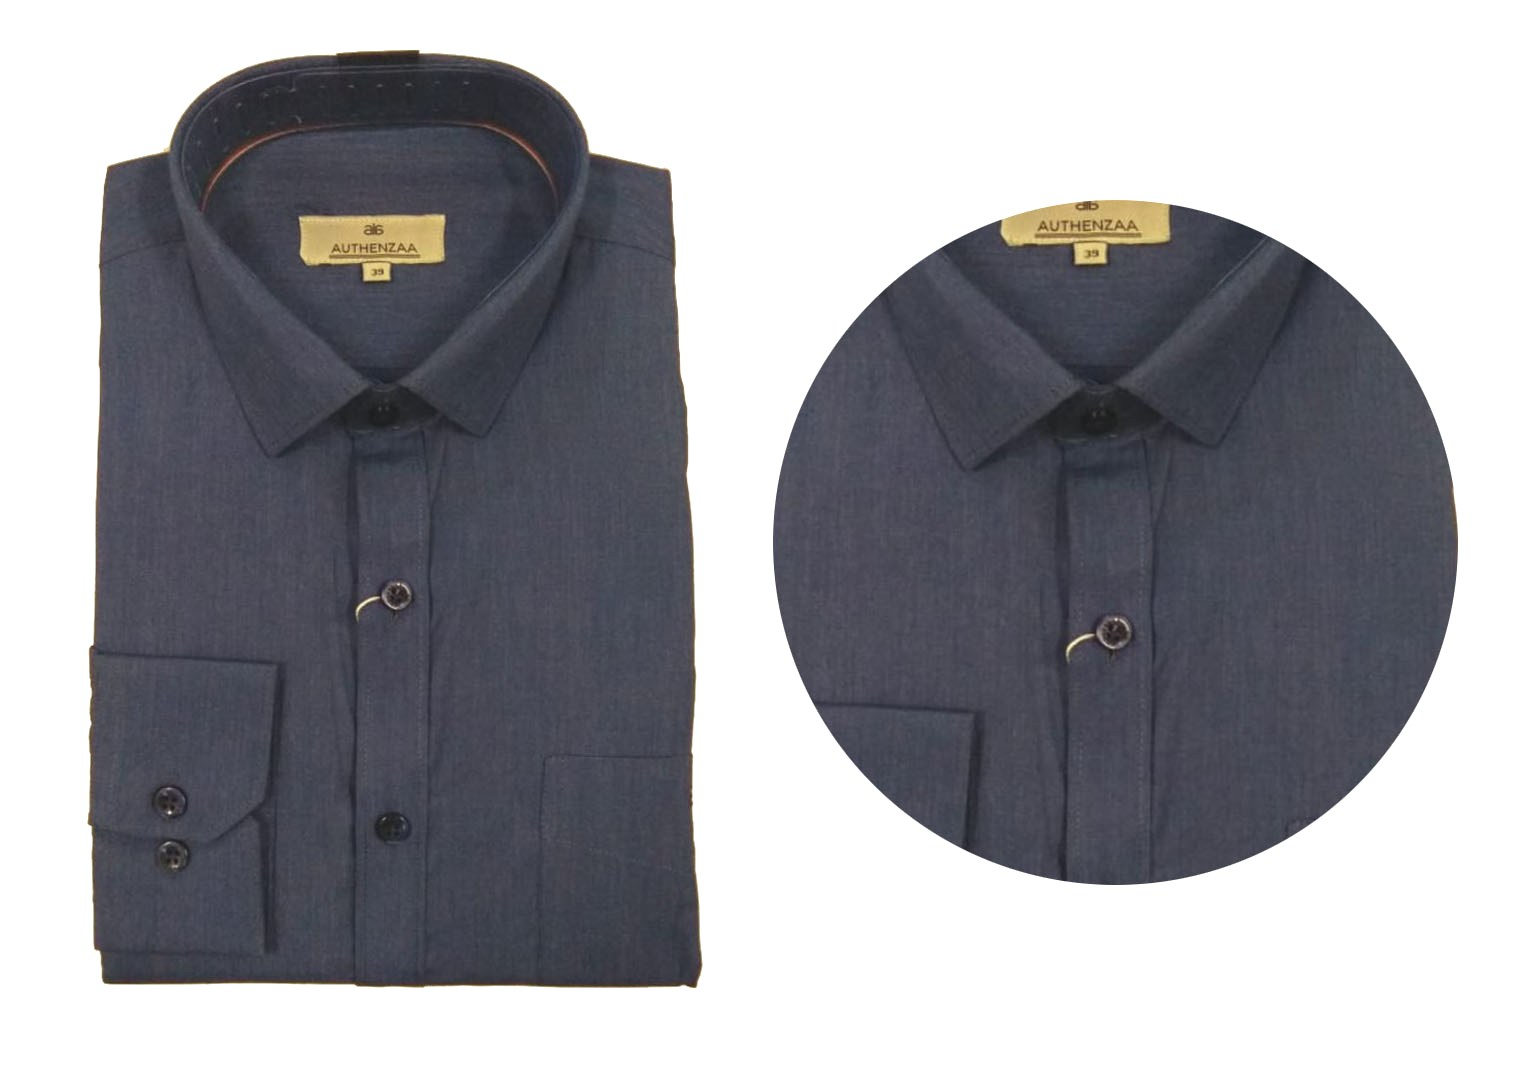 BT SEP 02 2019-GRAY MEN'S FORMAL SHIRT